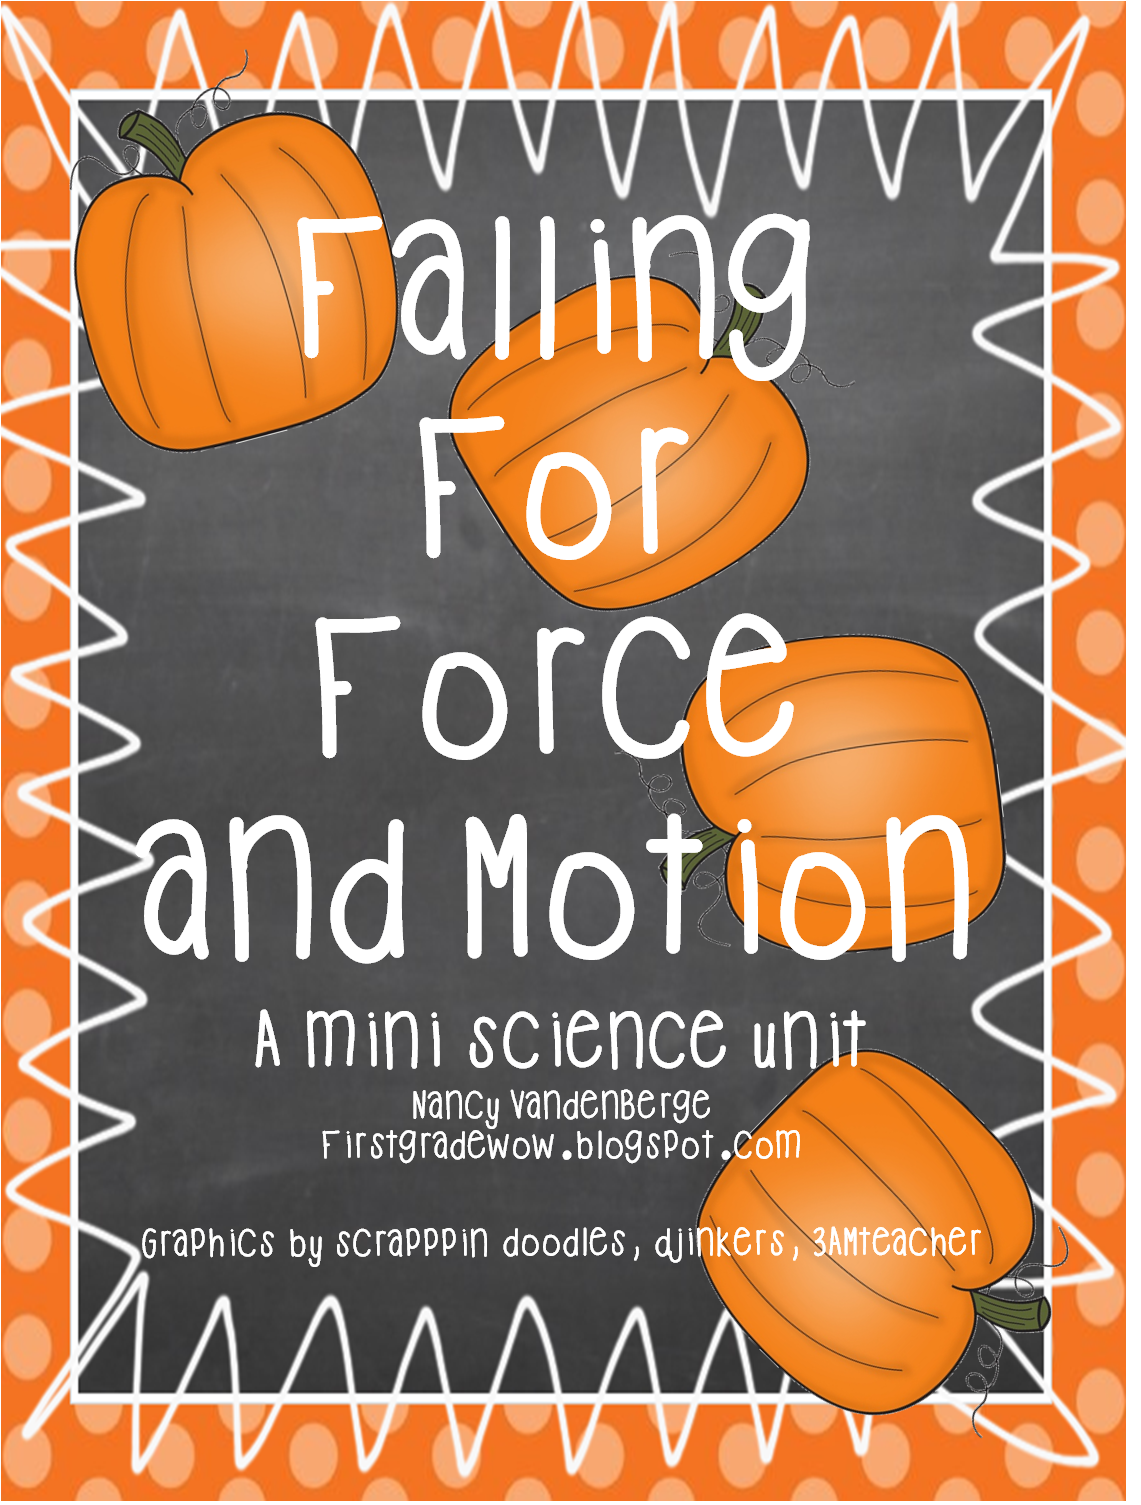 First Grade Wow Falling For Force And Motion